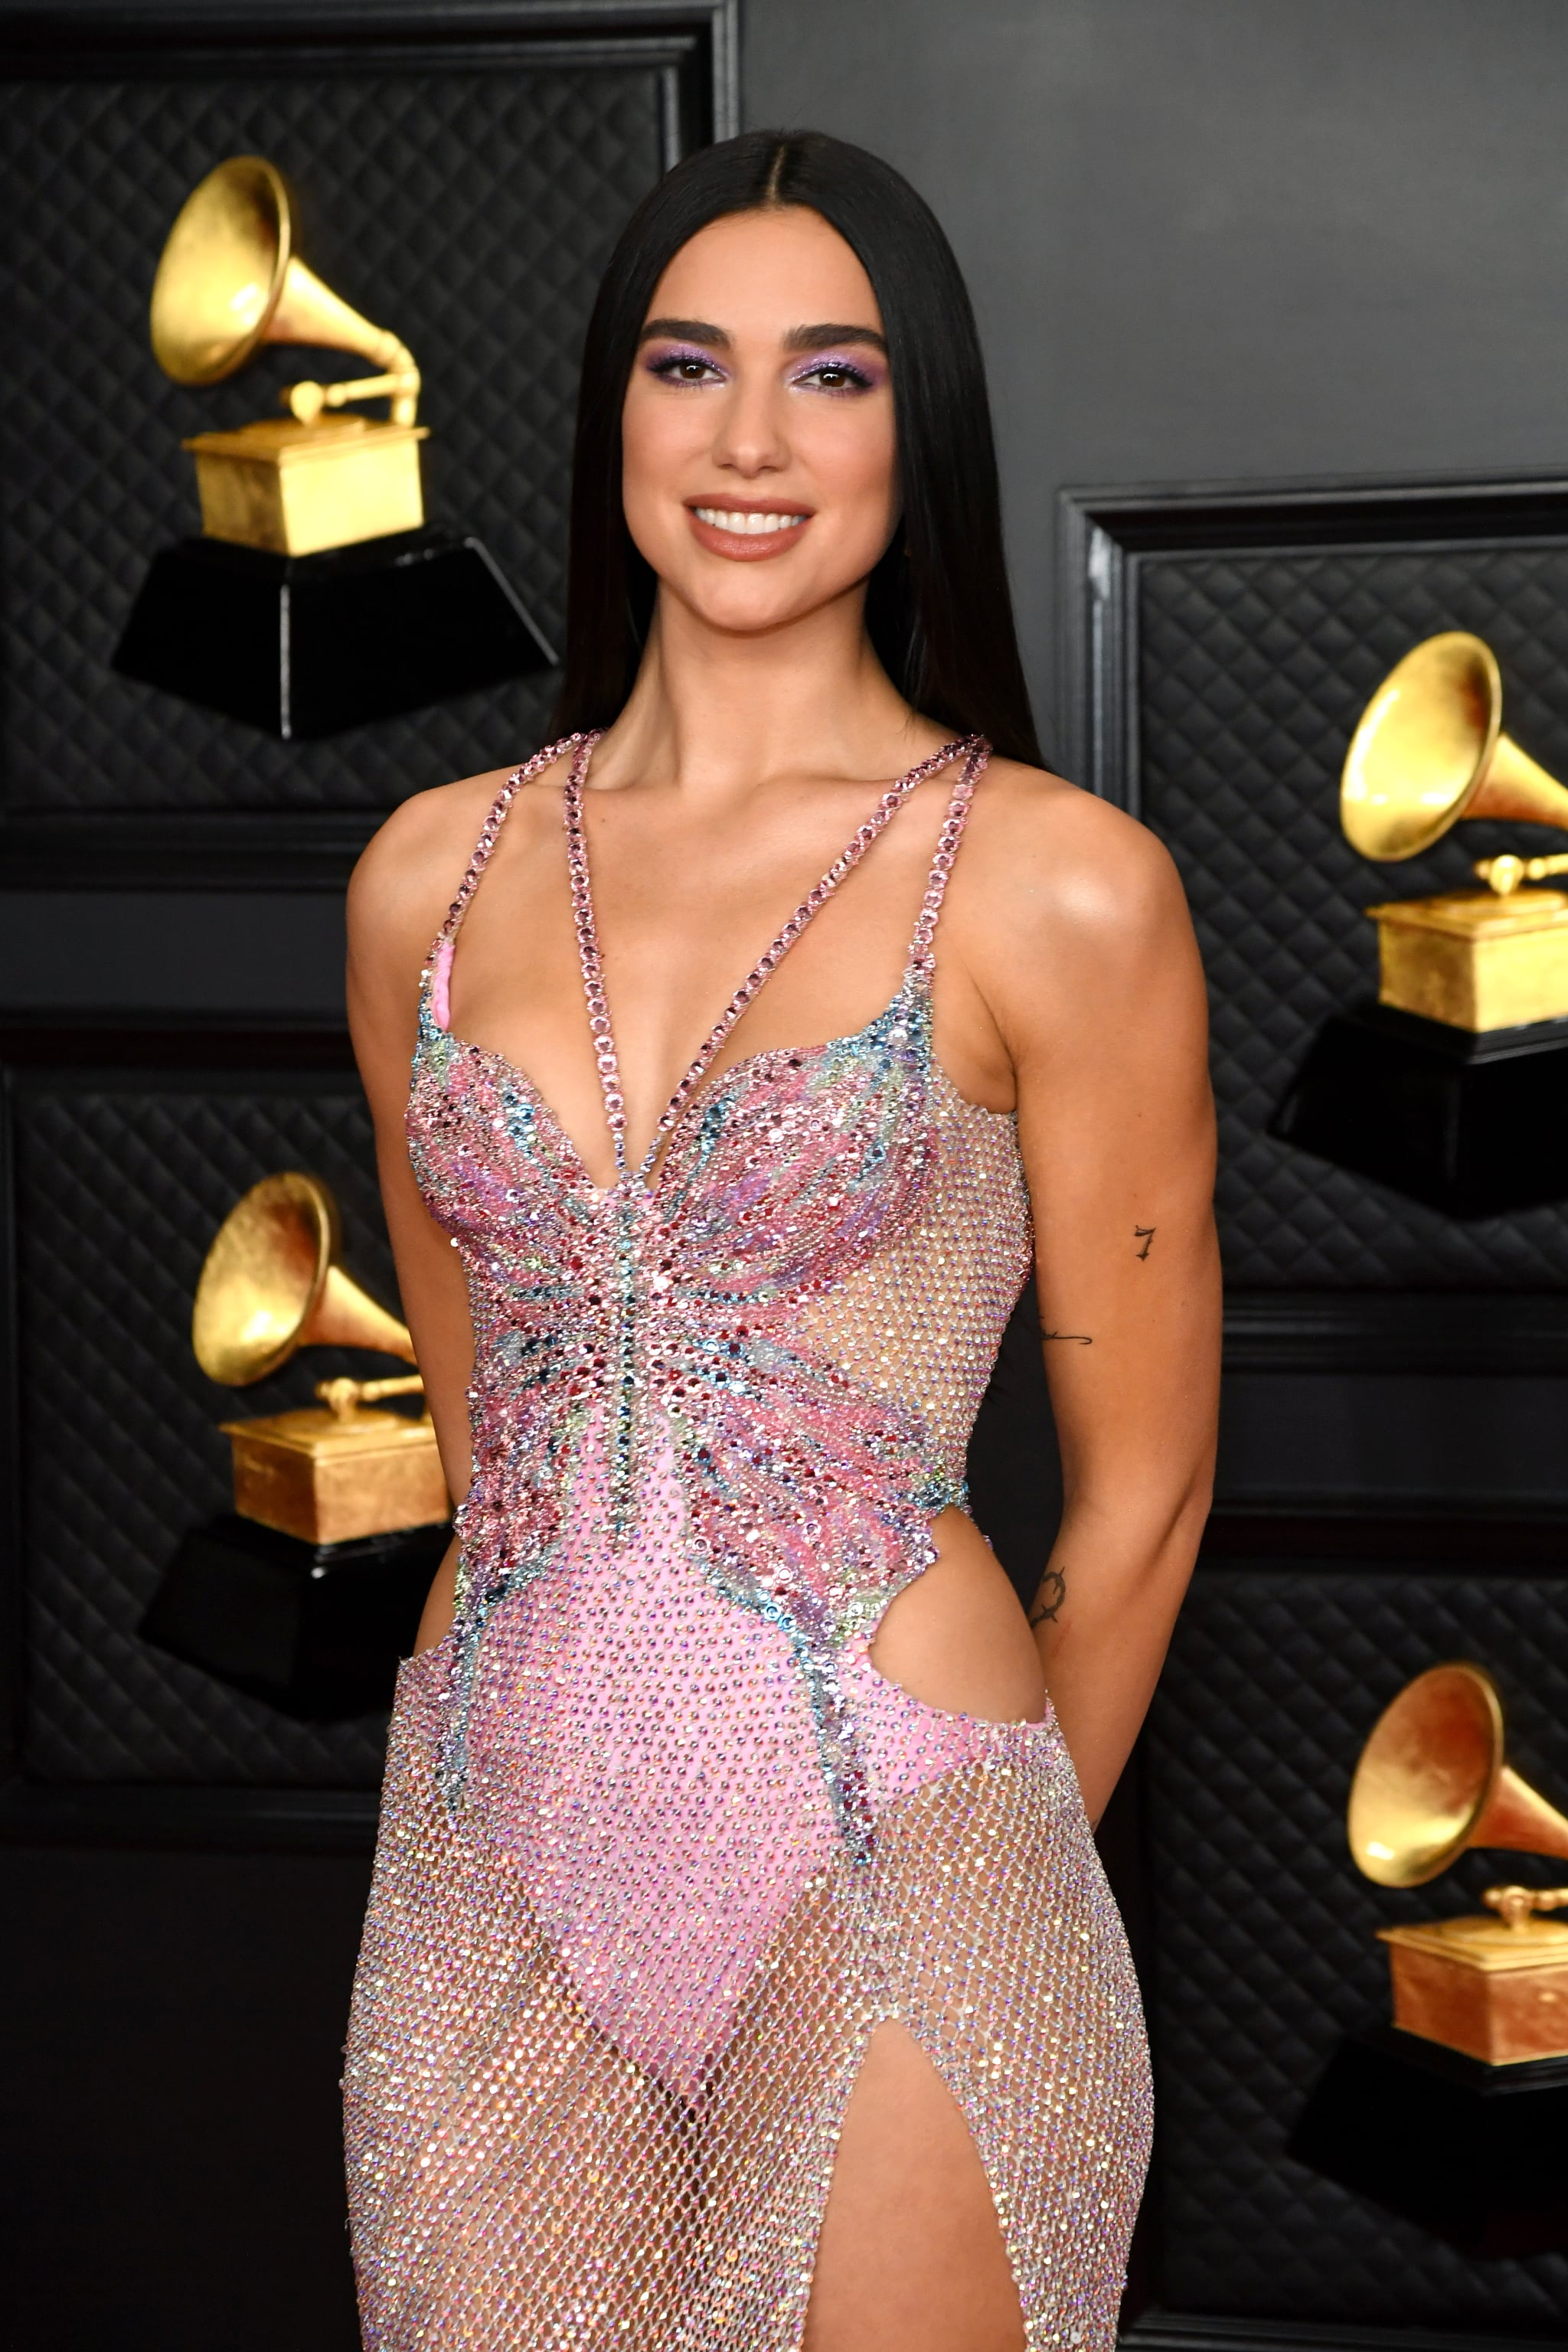 LOS ANGELES, CALIFORNIA - MARCH 14: Dua Lipa attends the 63rd Annual GRAMMY Awards at Los Angeles Convention Center on March 14, 2021 in Los Angeles, California. (Photo by Kevin Mazur/Getty Images for The Recording Academy )